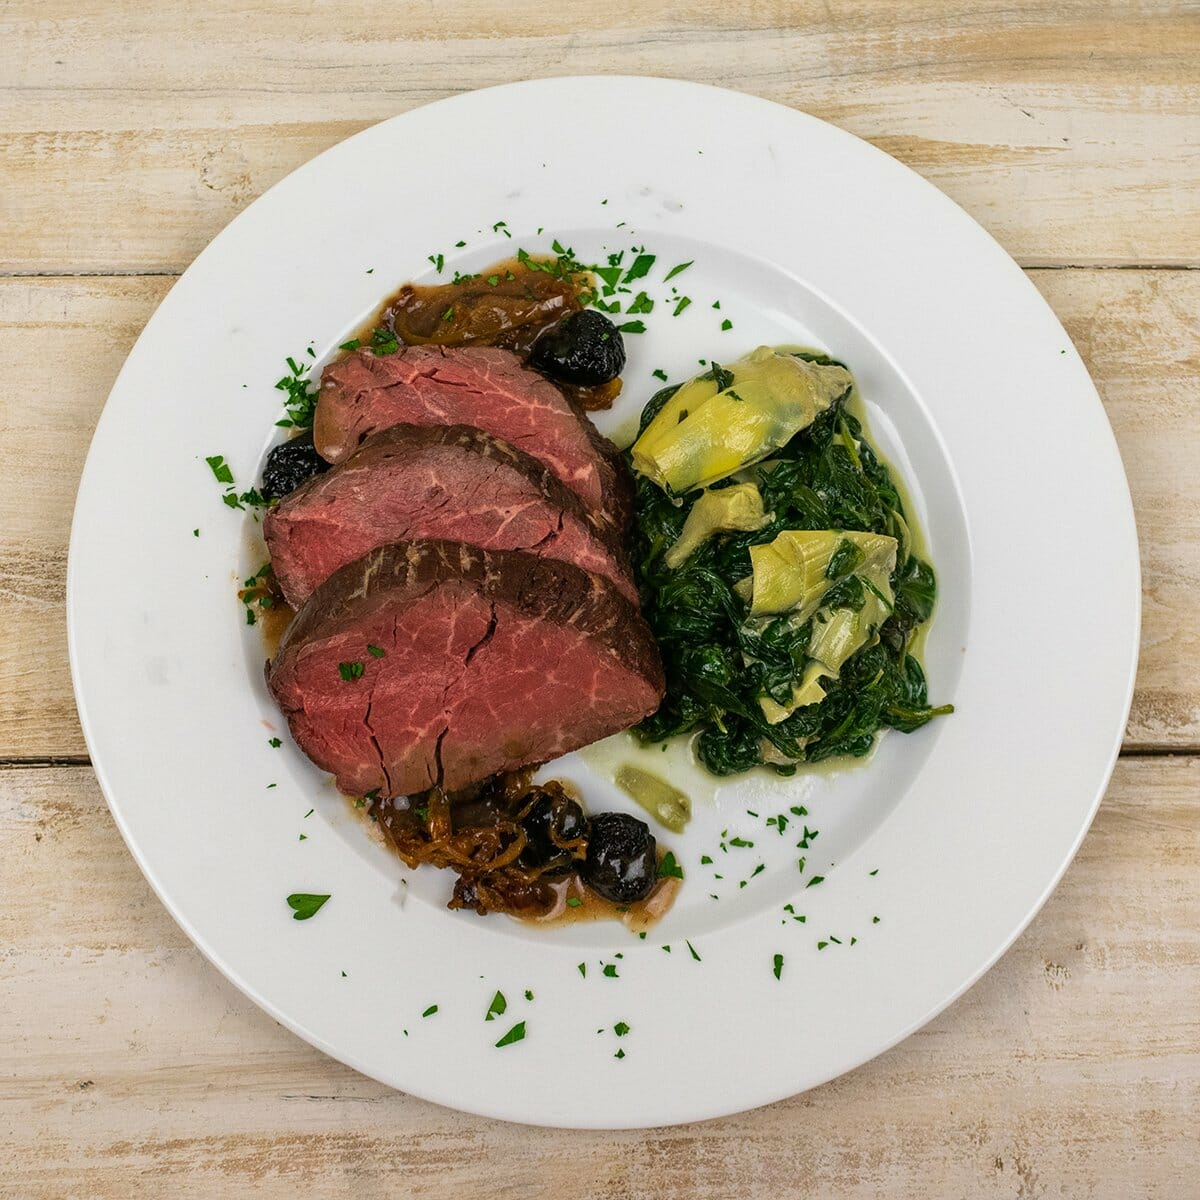 Paleo on the Go - Filet with Spinach Artichoke Casserole